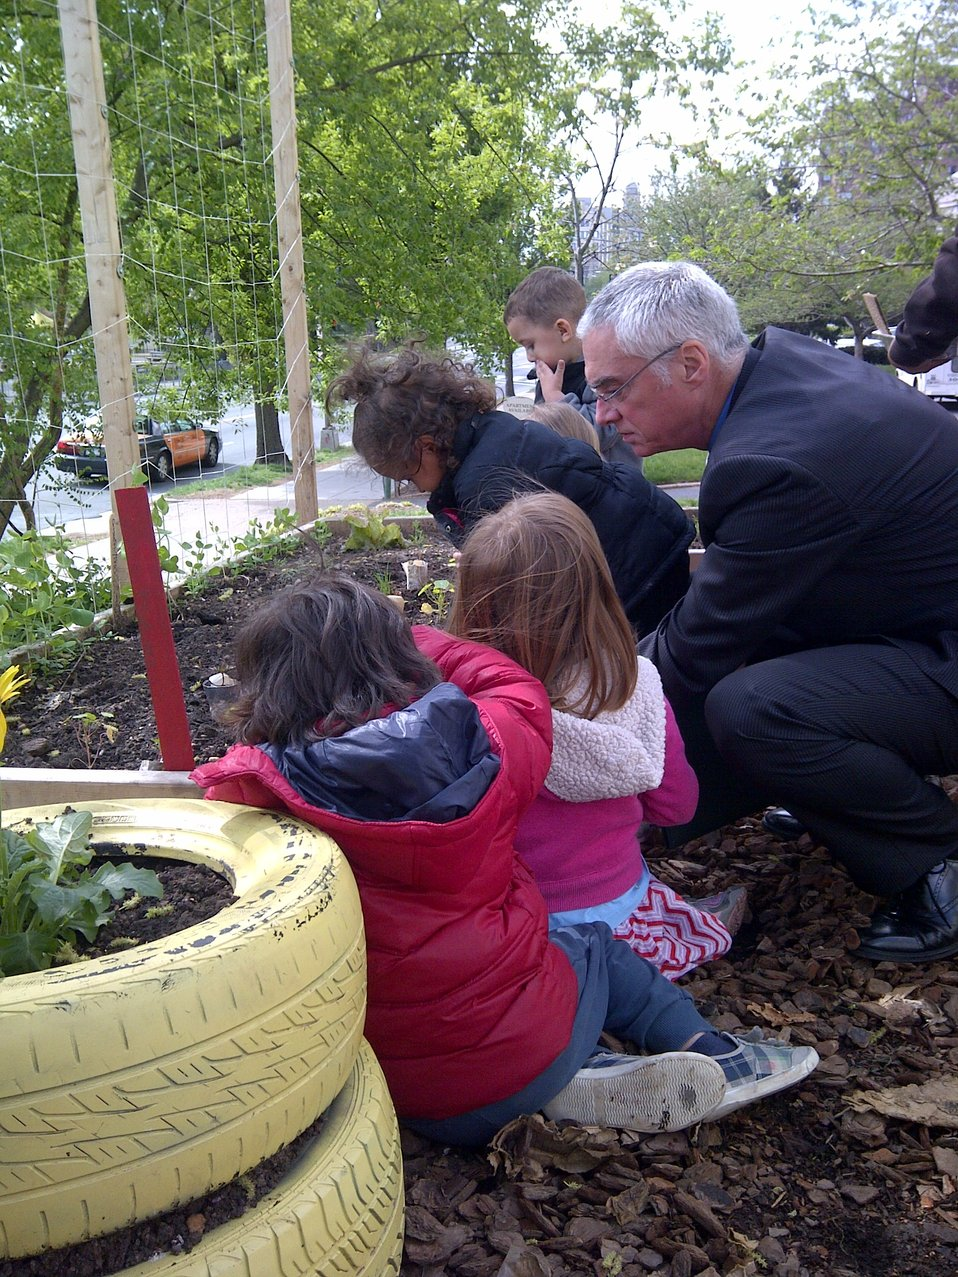 April 23, 2013 – Celebrating Earth Day with Kids